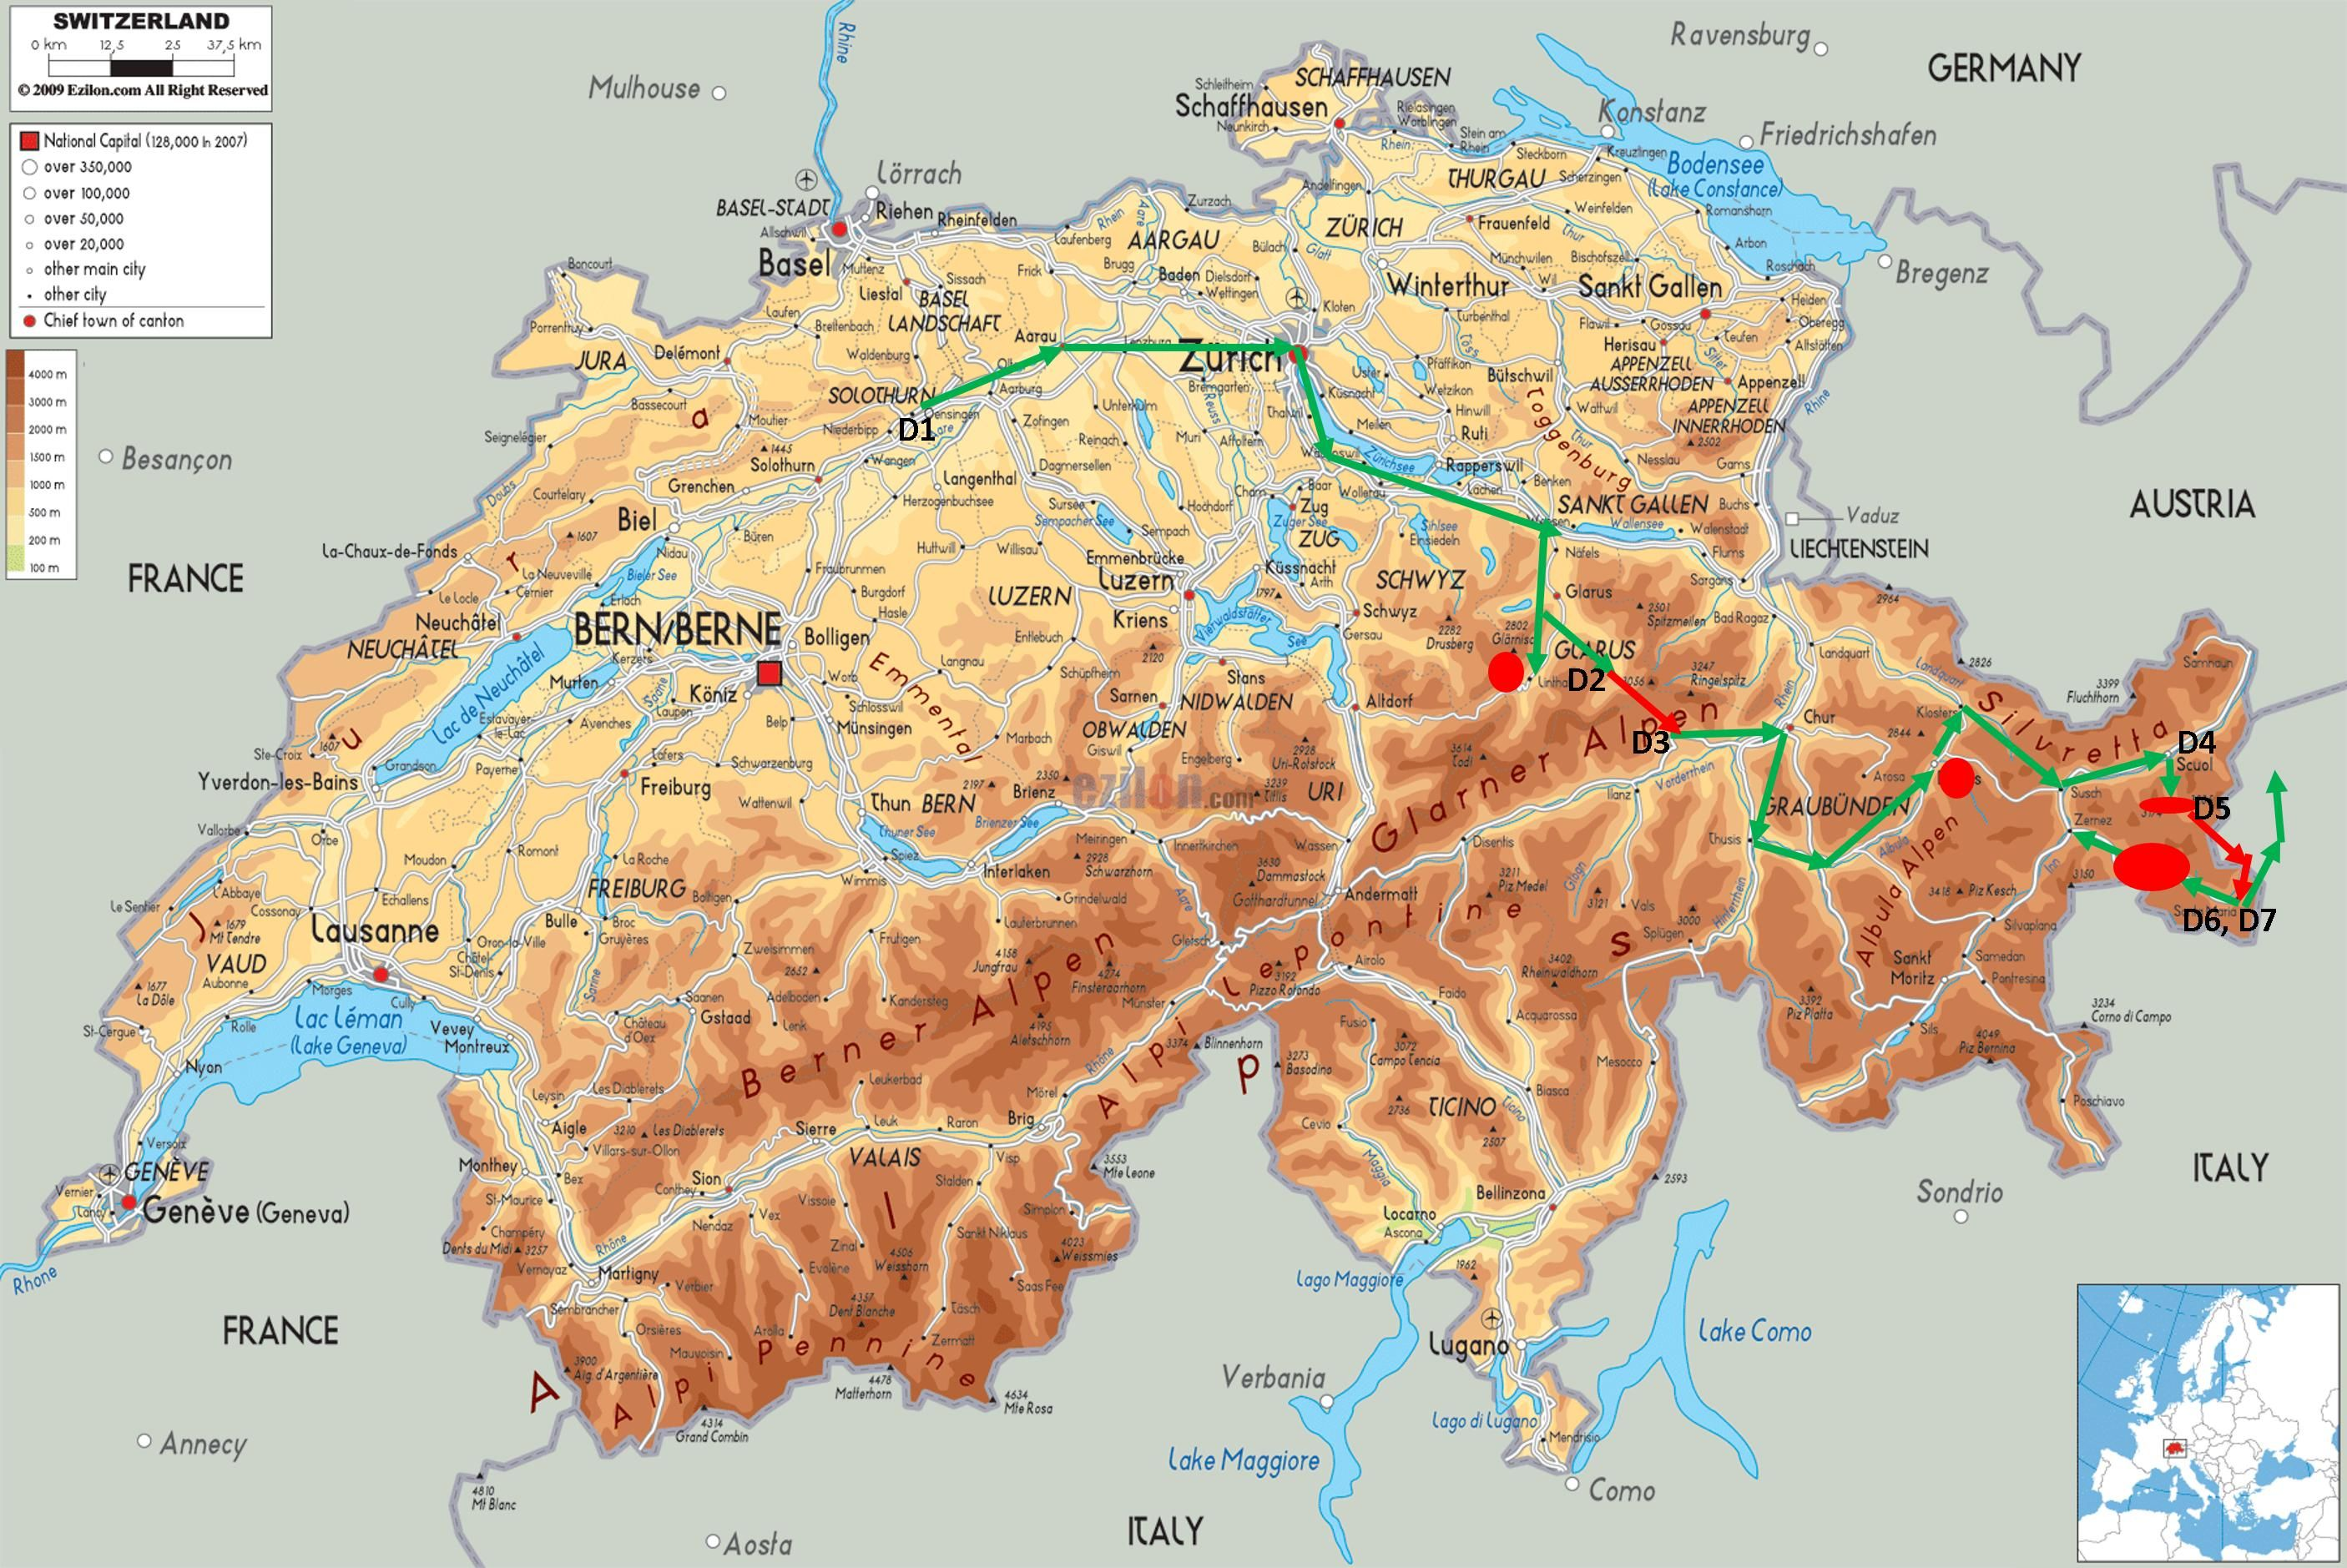 Physical Map Of South Carolina%0A switzerland map   Large detailed physical map of Switzerland with roads   cities and       Europe   Pinterest   Switzerland and City